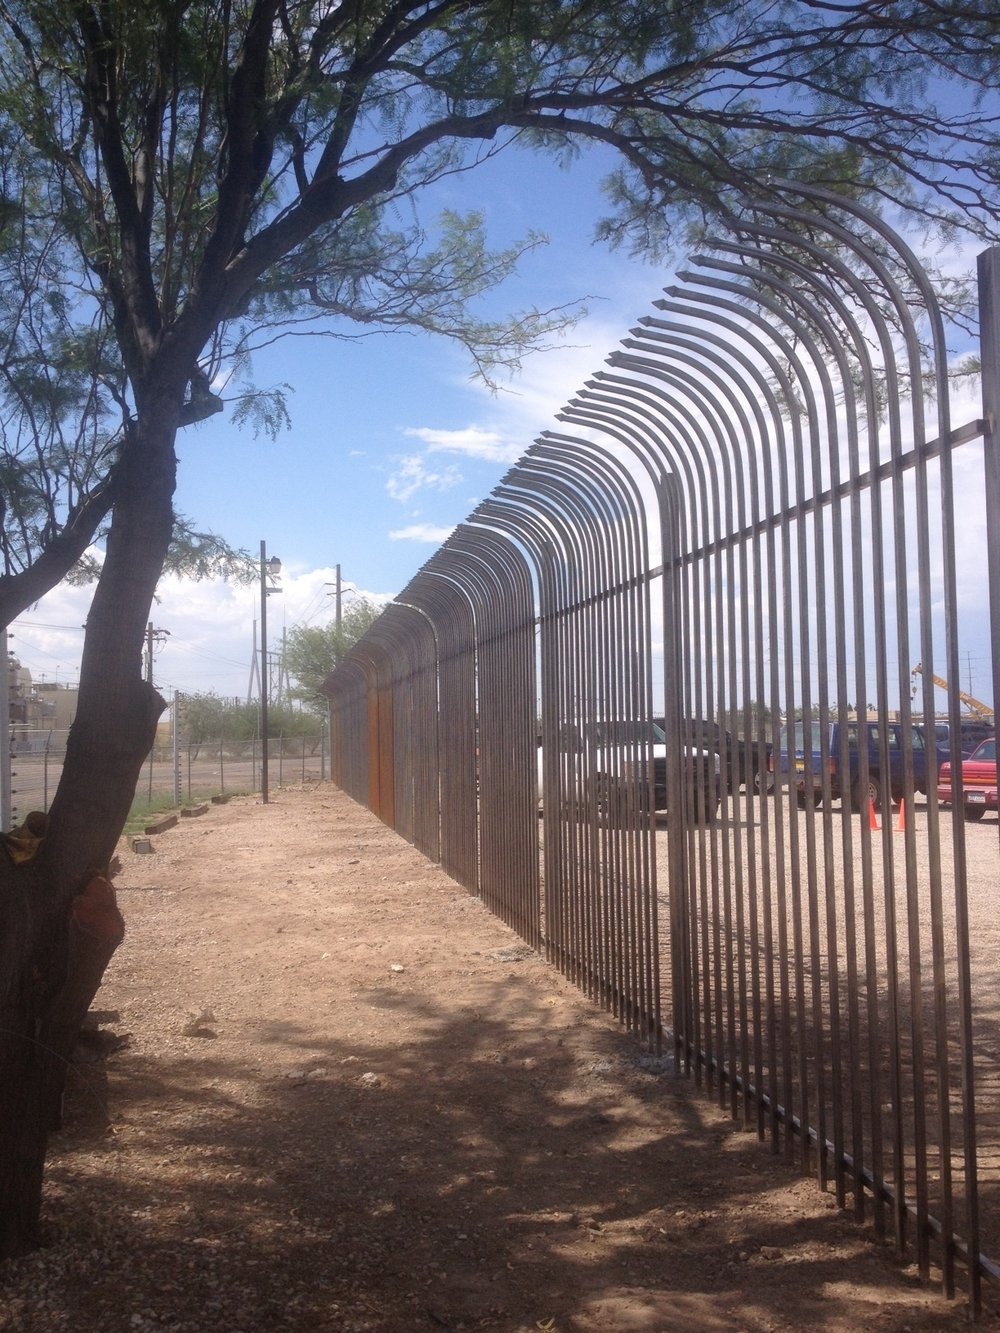 comercial fence.JPG